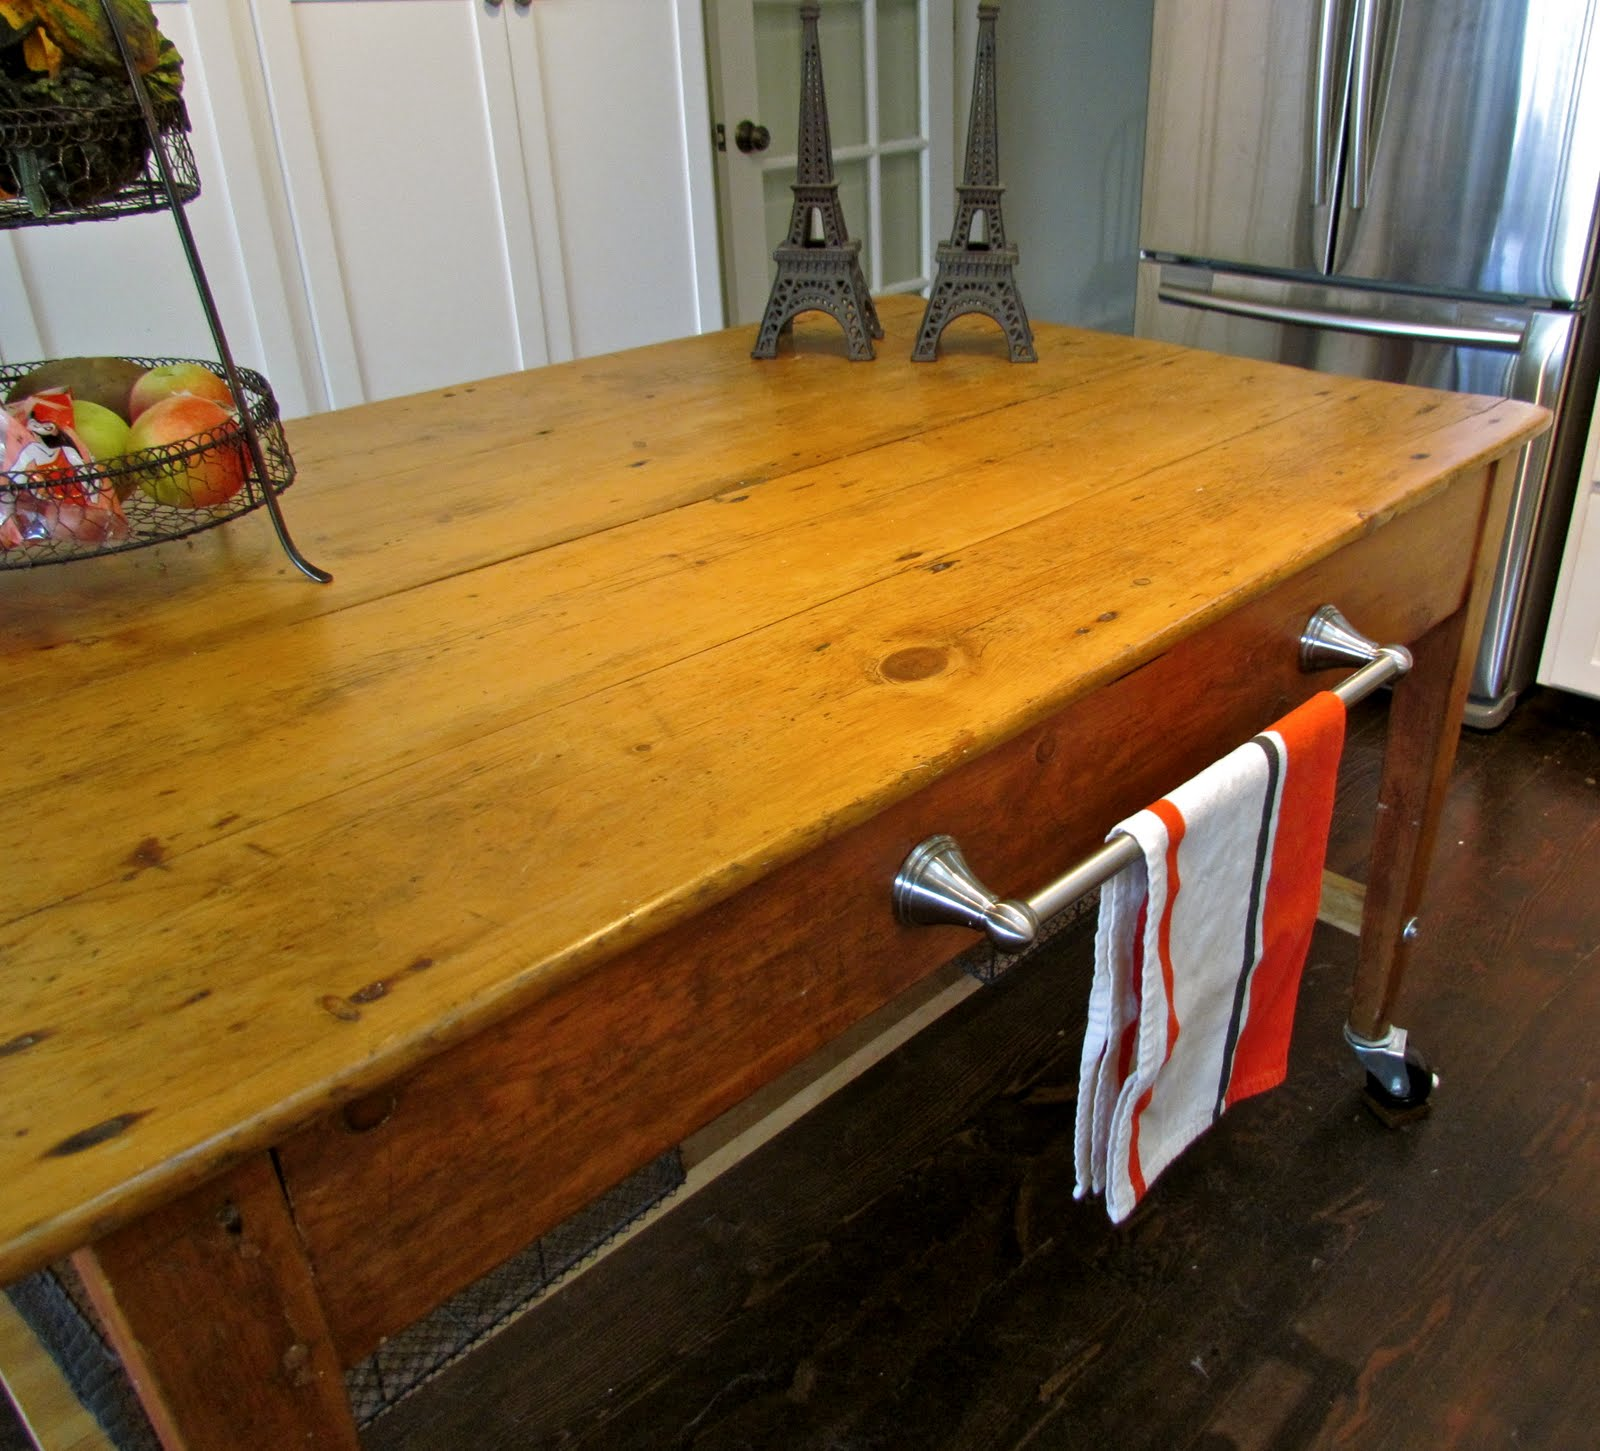 Priscilla Mae et al: My DIY Kitchen Center Island